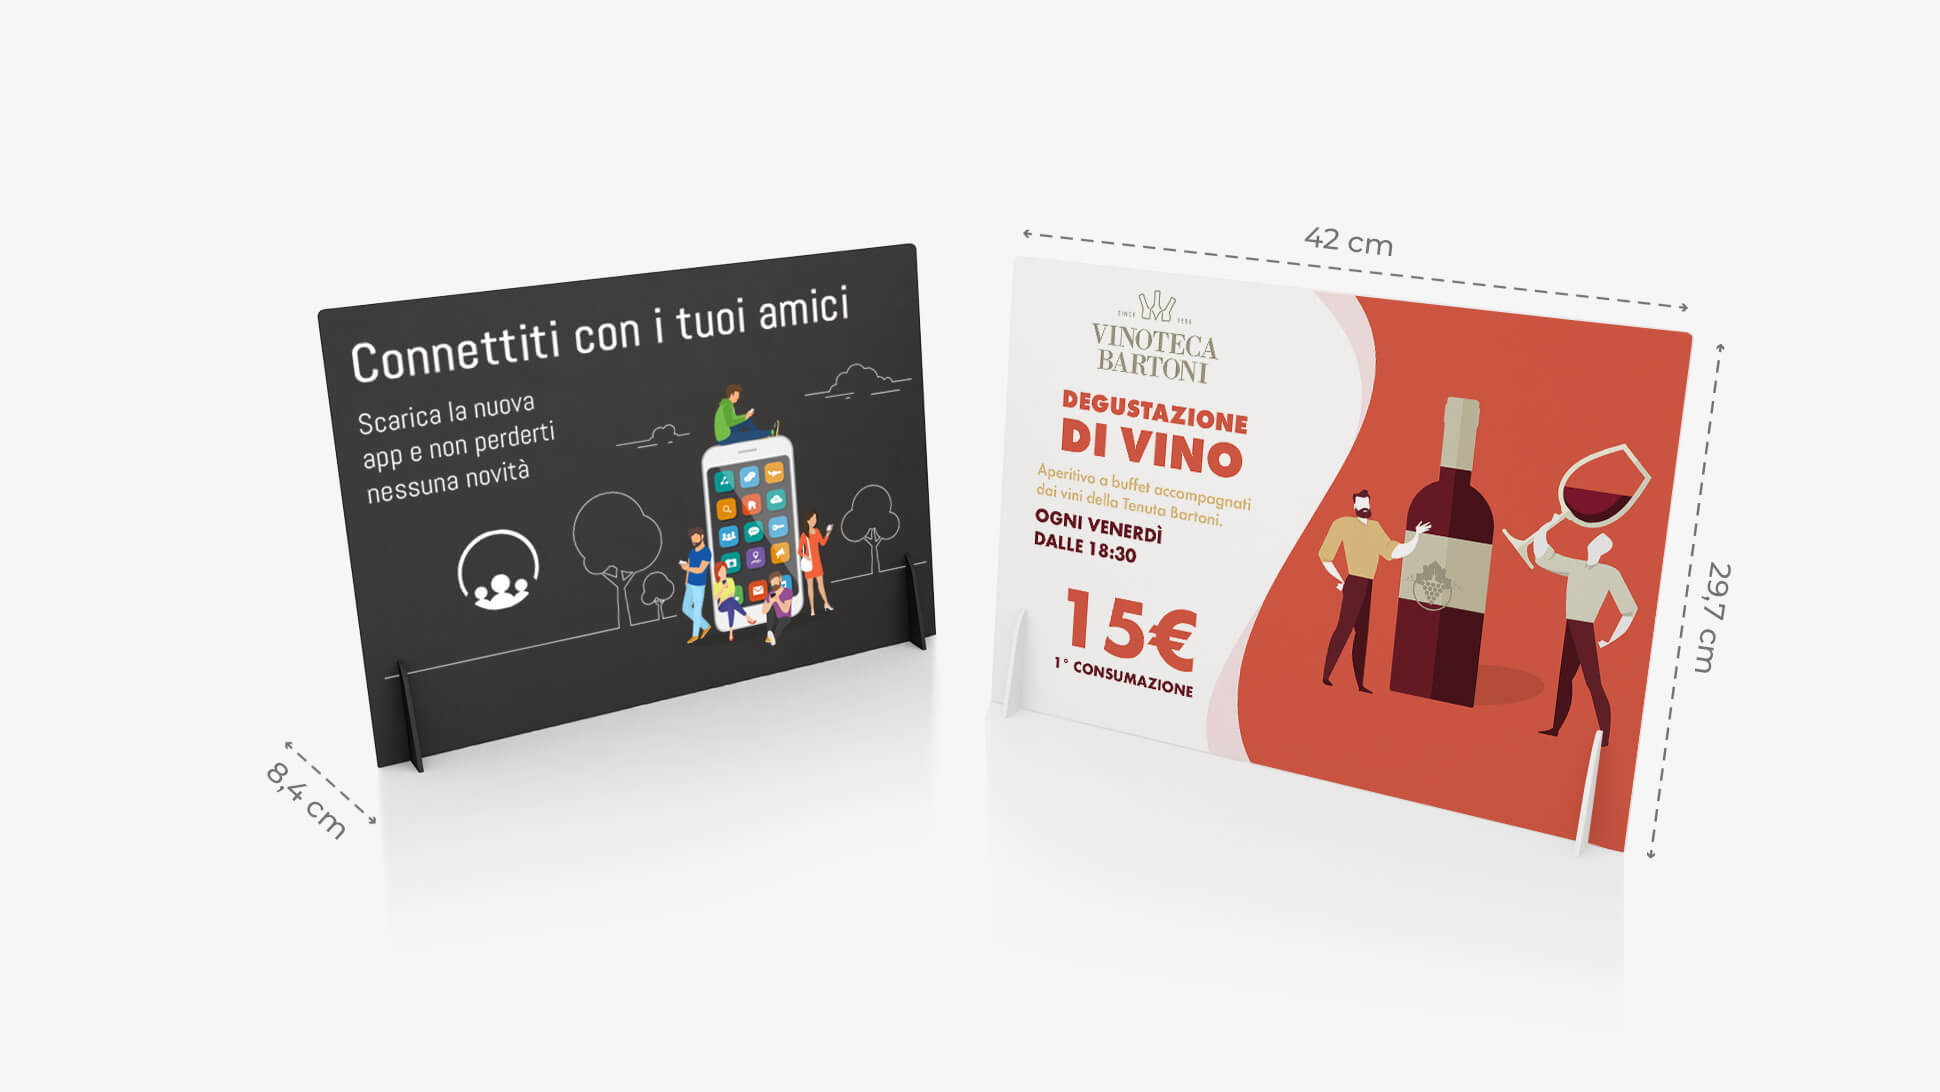 Display pvc A3 orizzontale personalizzabile | tictac.it